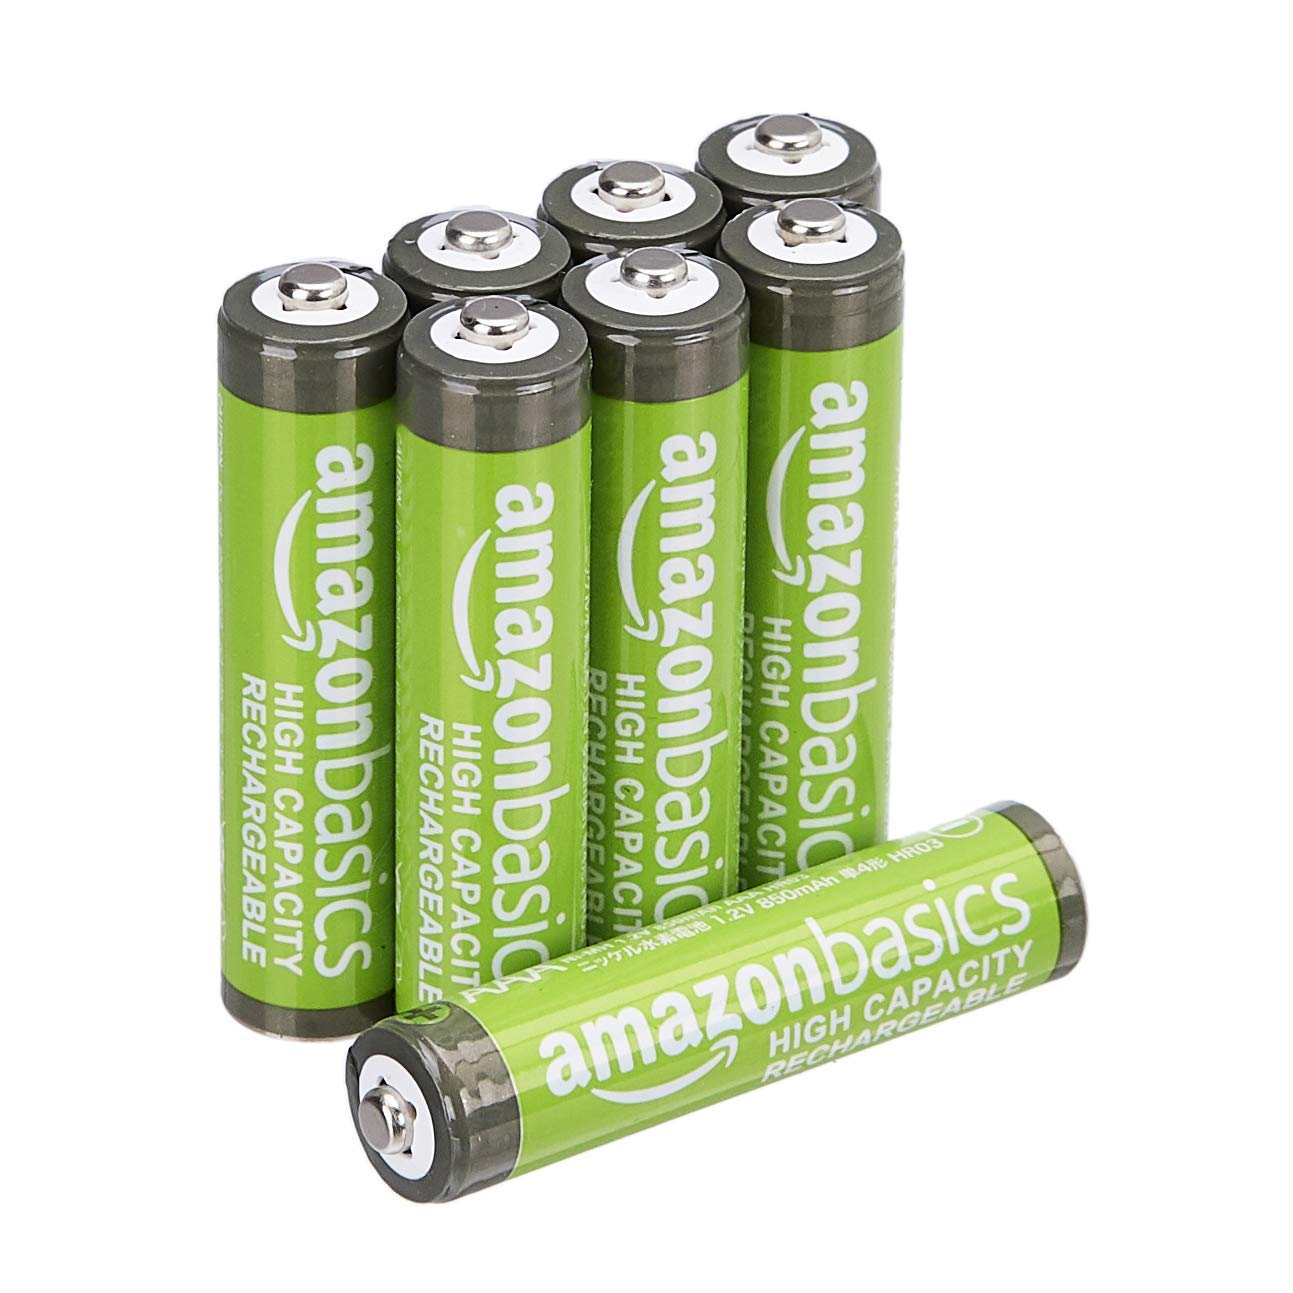 AmazonBasics High Capacity AAA Pre-Charged Rechargeable Batteries 850 mAh / minimum: 800 mAh [Pack of 8] for £8.87